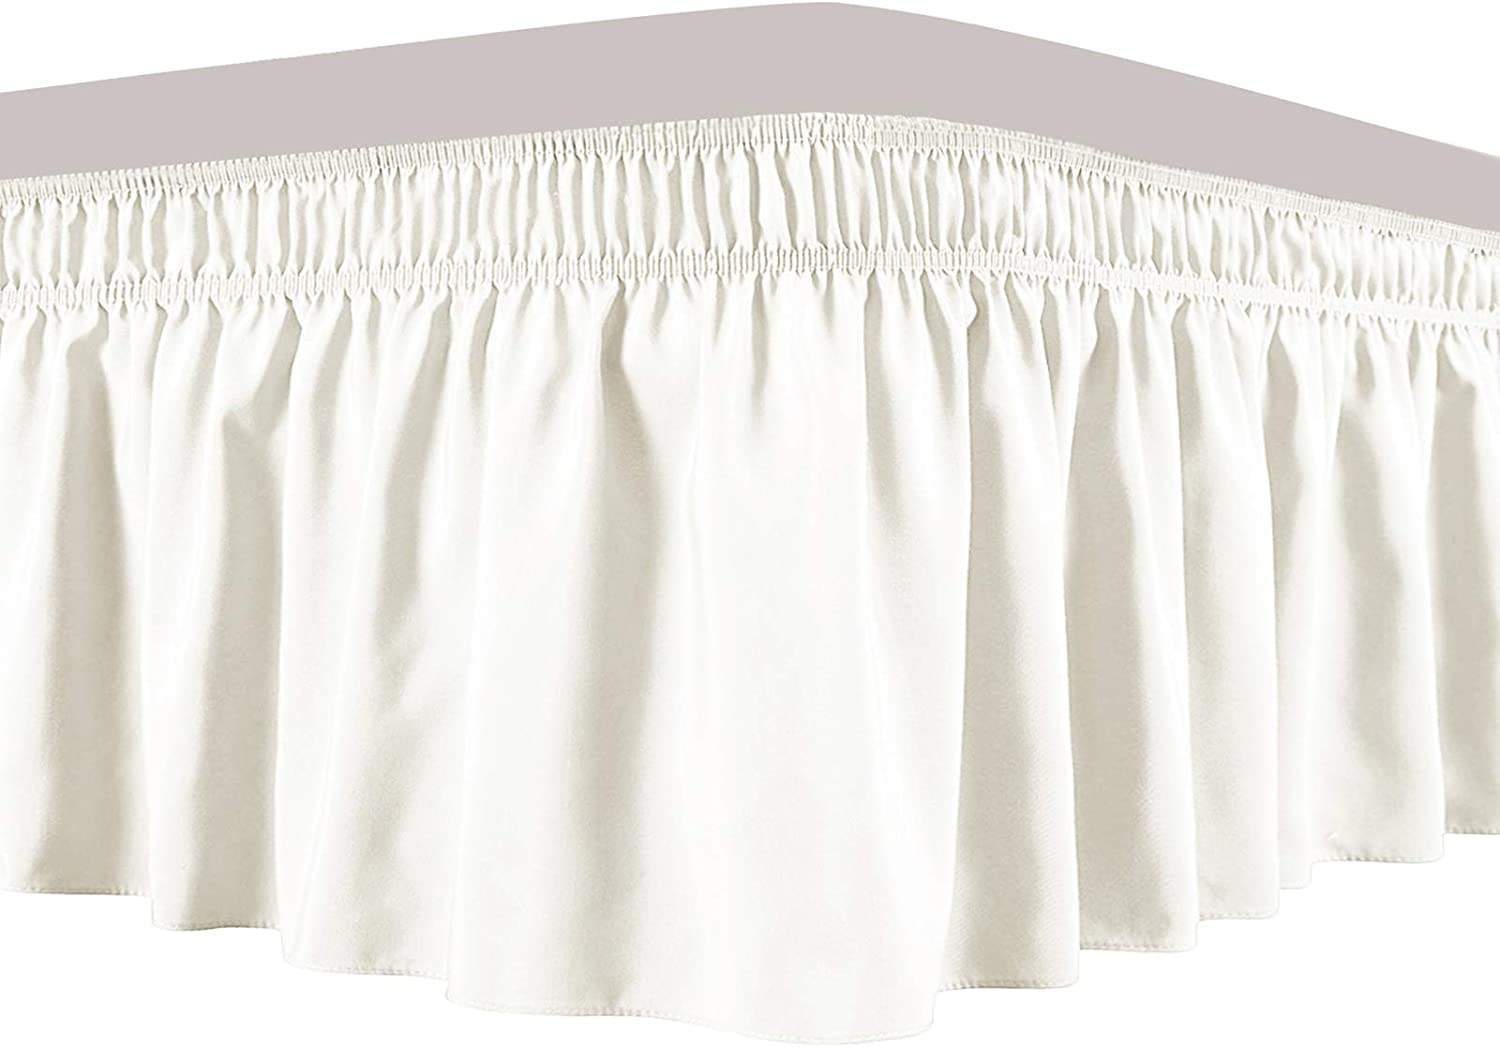 Obytex Wrap Around Bed Skirts, Cotton Bedskirt Elastic Dust Ruffle Silky Soft & Wrinkle Free Classic Stylish Look in Your Bedroom (Cream, Twin/Full)